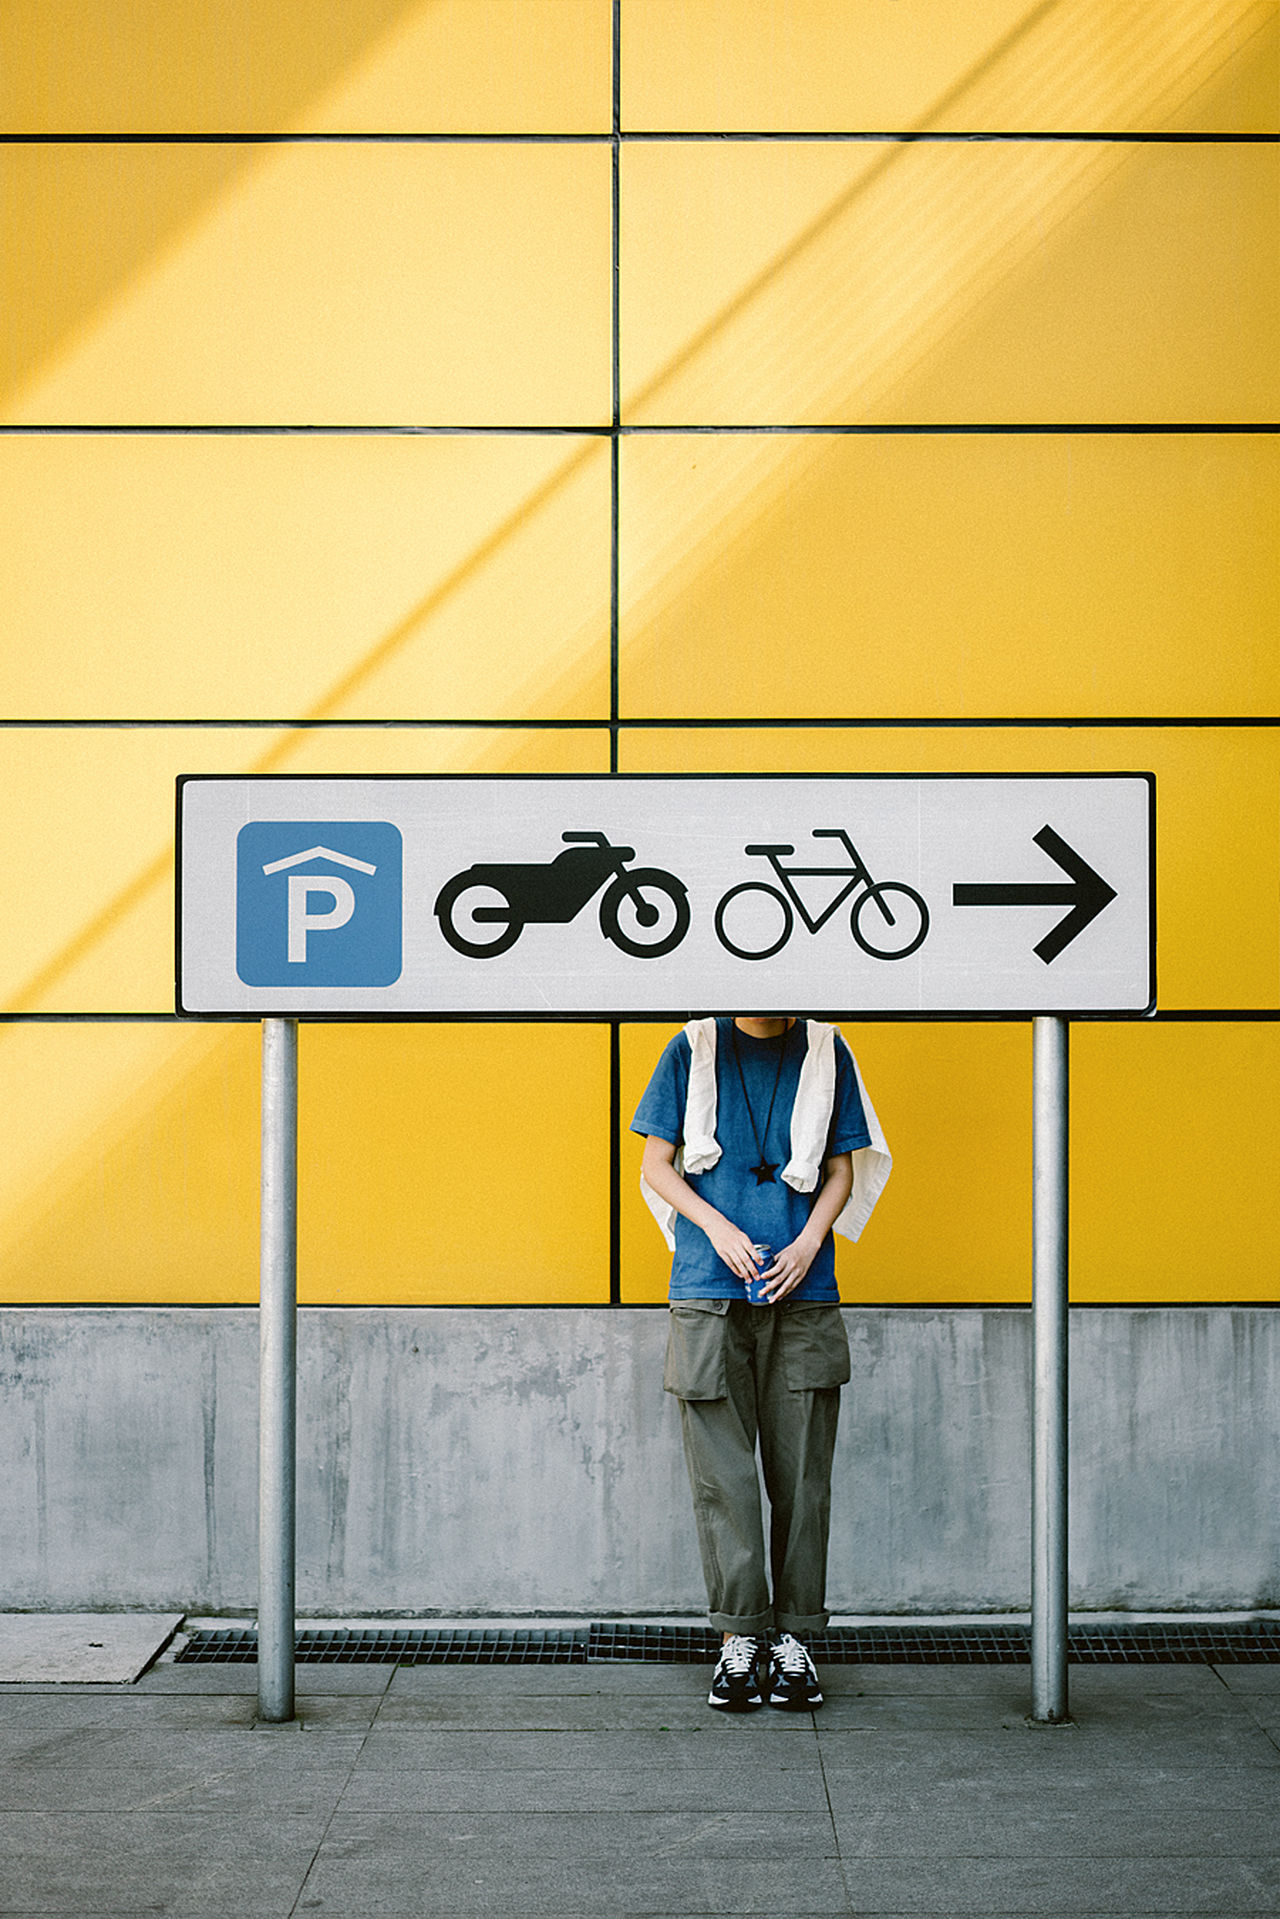 Architecture Street Photography Full Length Standing One Person People Real People Outdoors Lifestyles IKEA